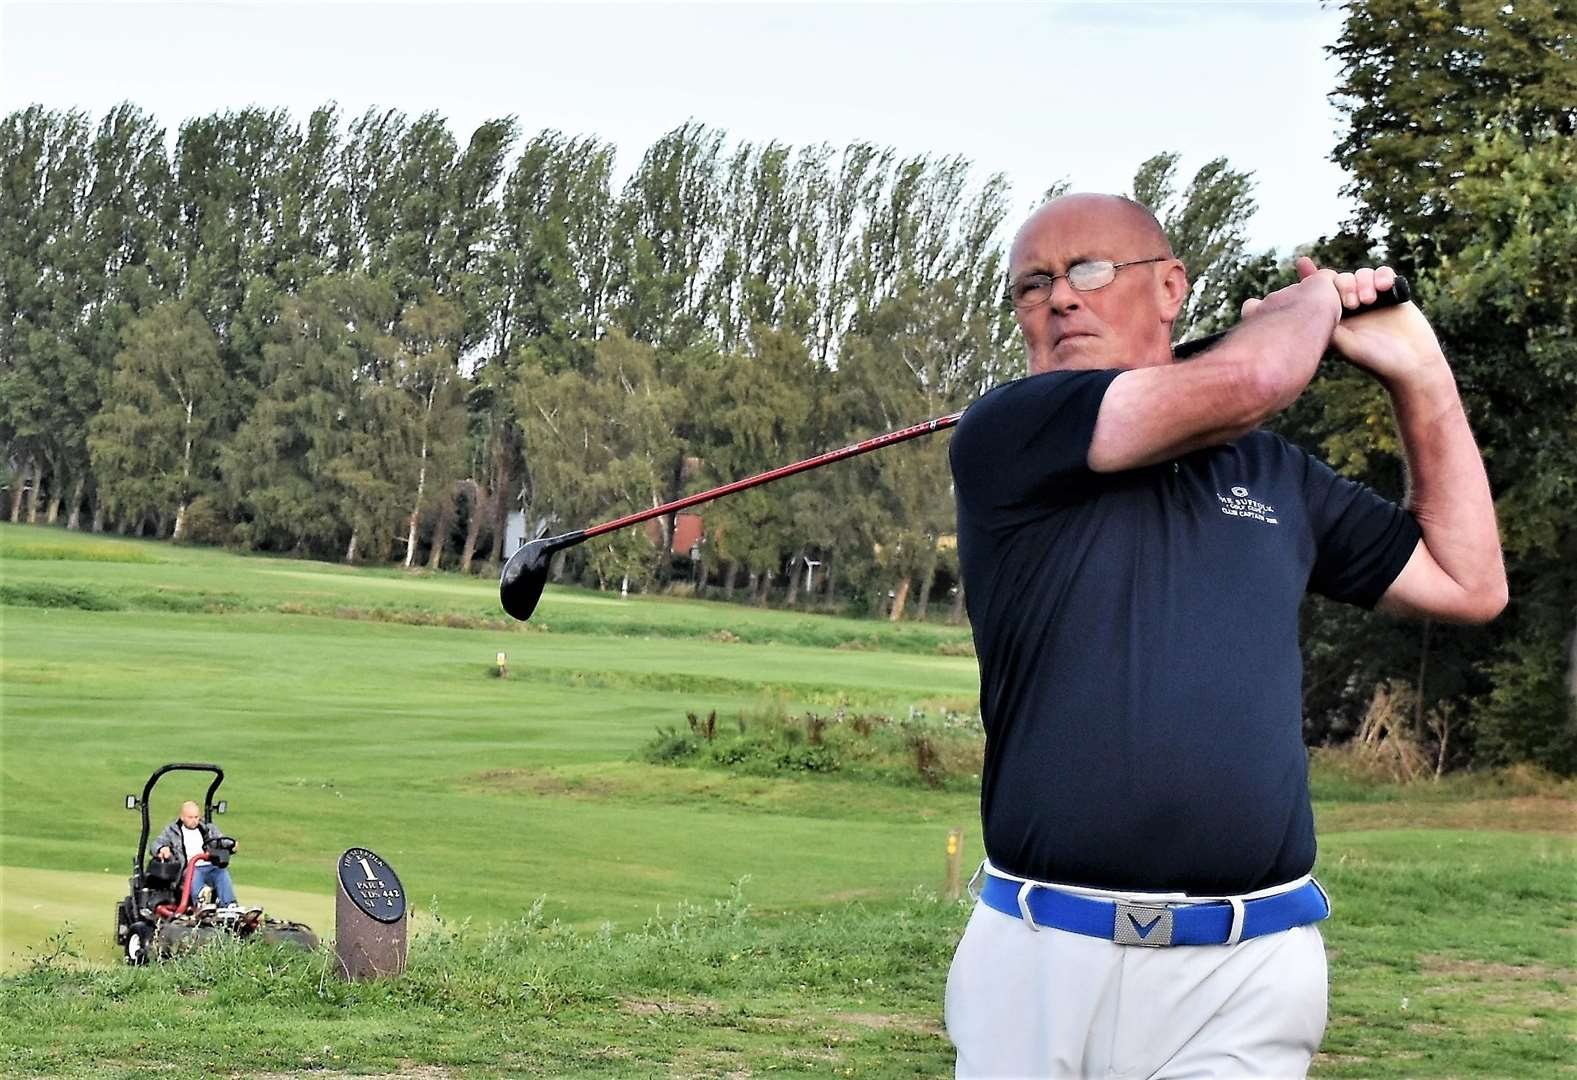 Chris Boughton's Golf Column: Jackson signs off with Captain's Day